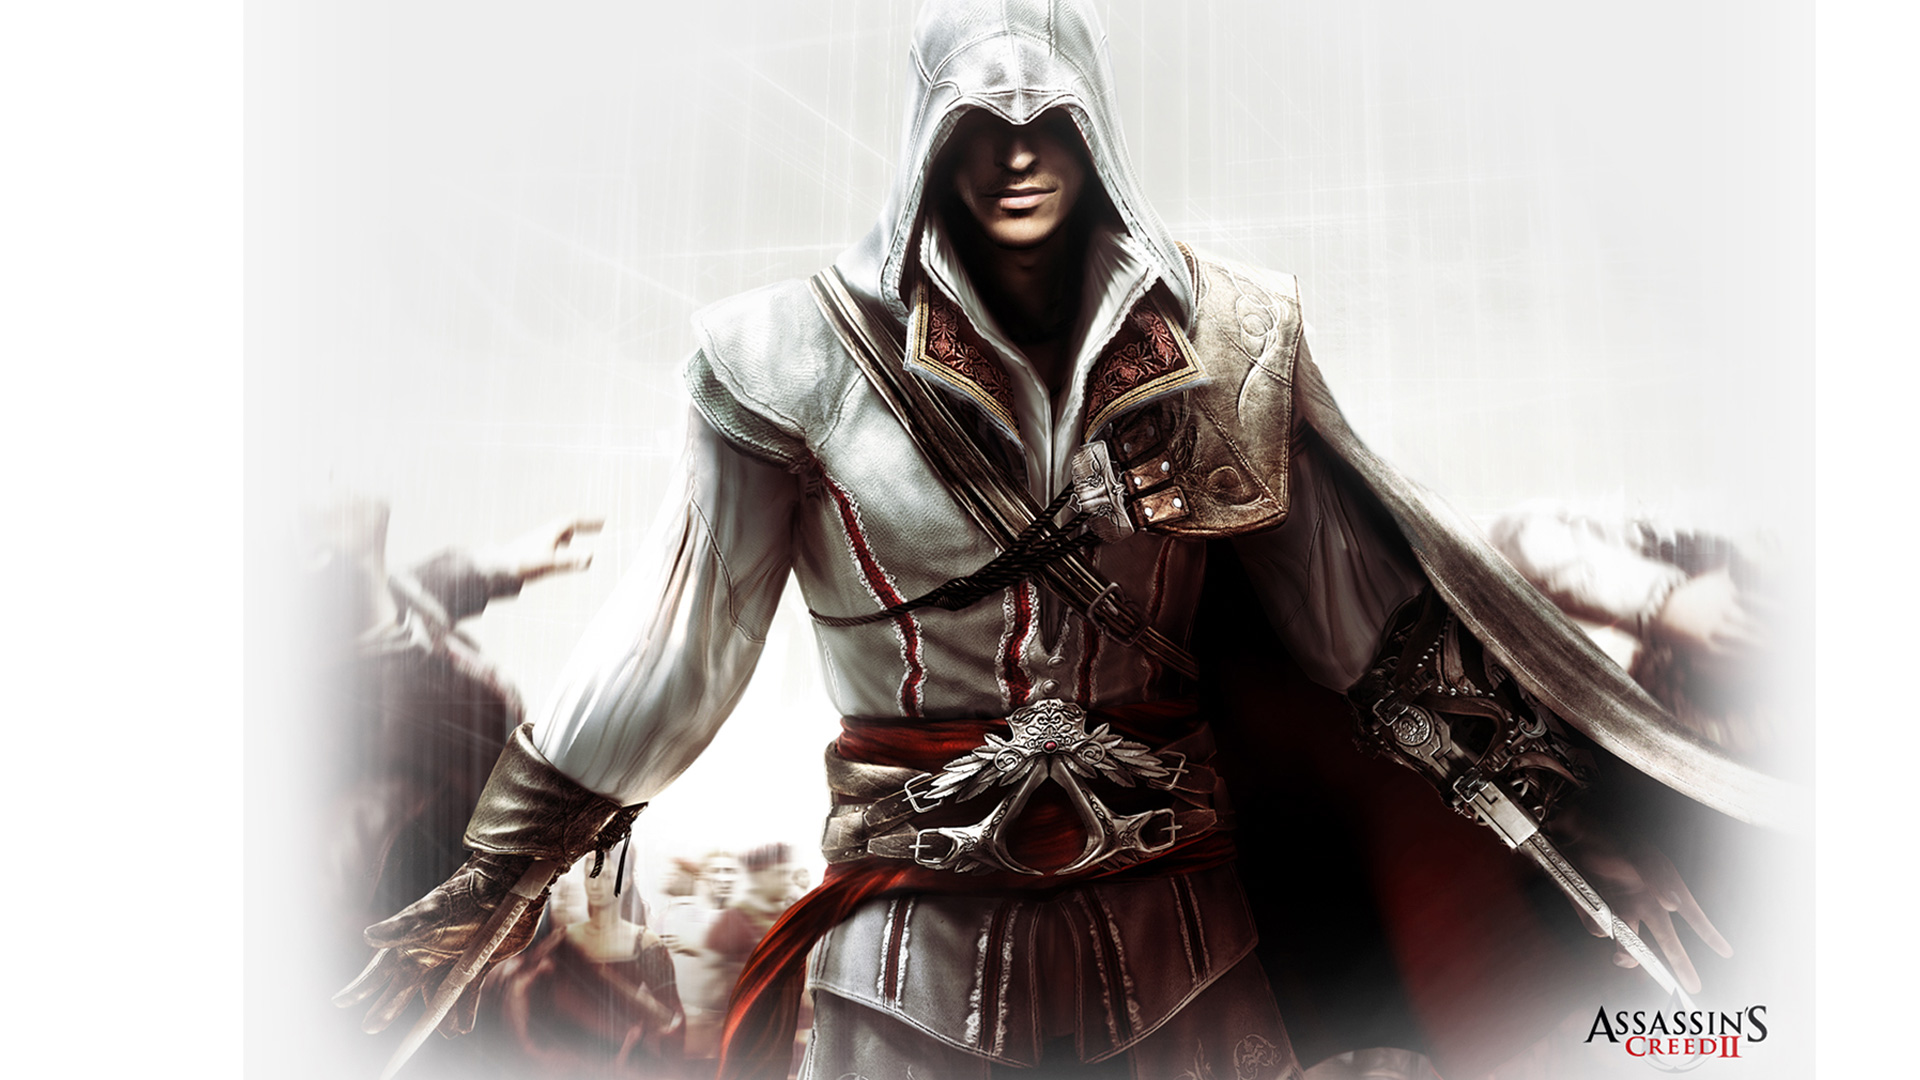 Assassins Creed 2 wallpaper 5